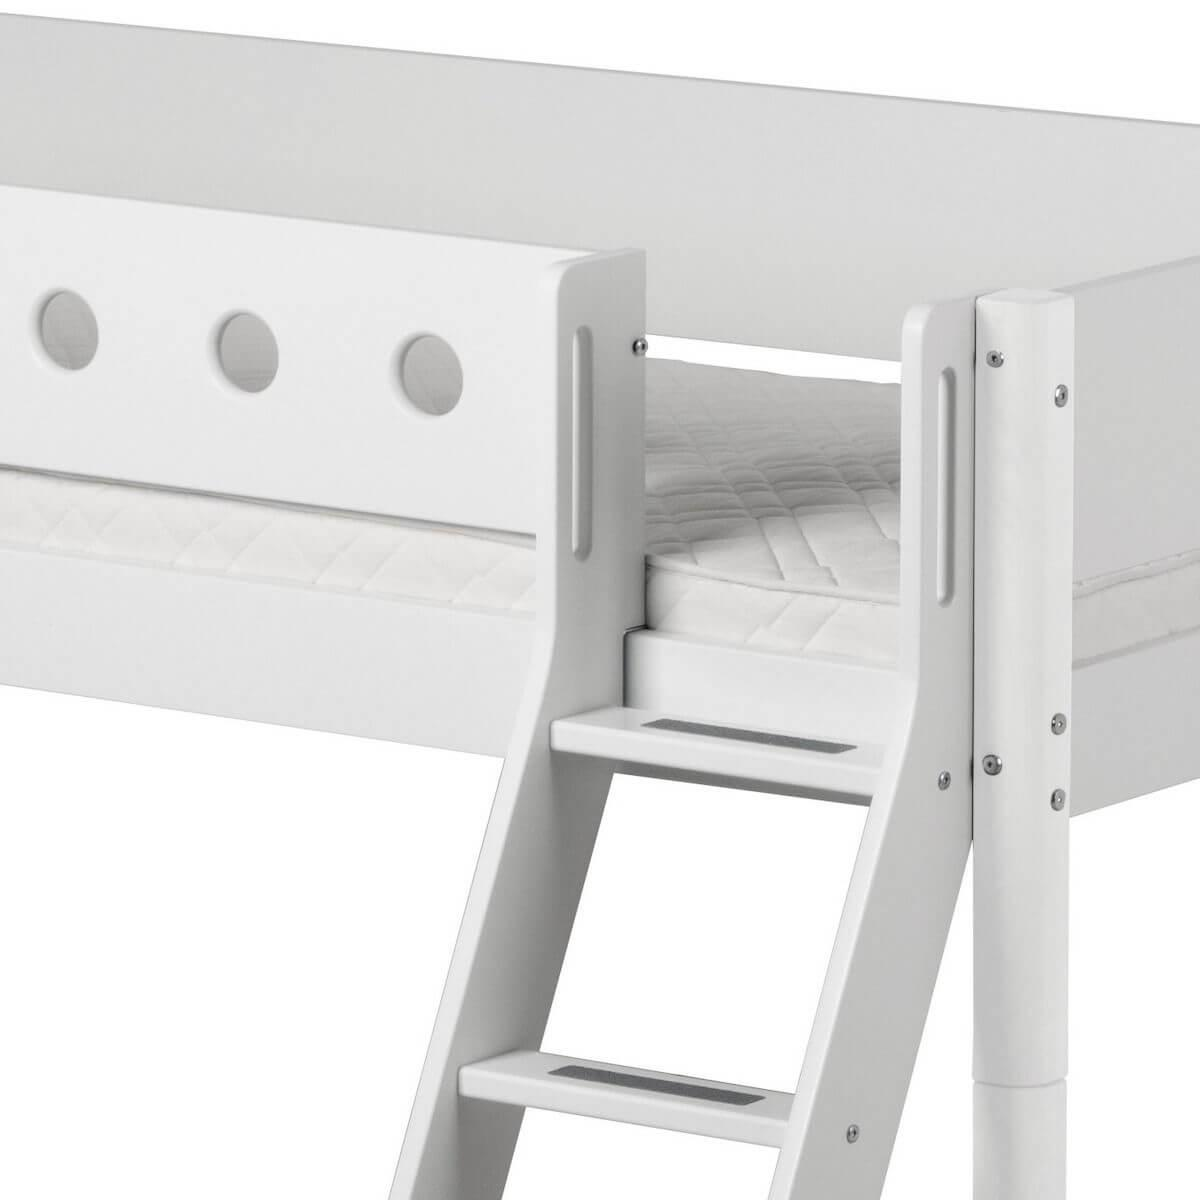 Cama media alta 90x190 WHITE Flexa escalera inclinada barrera y patas blancas